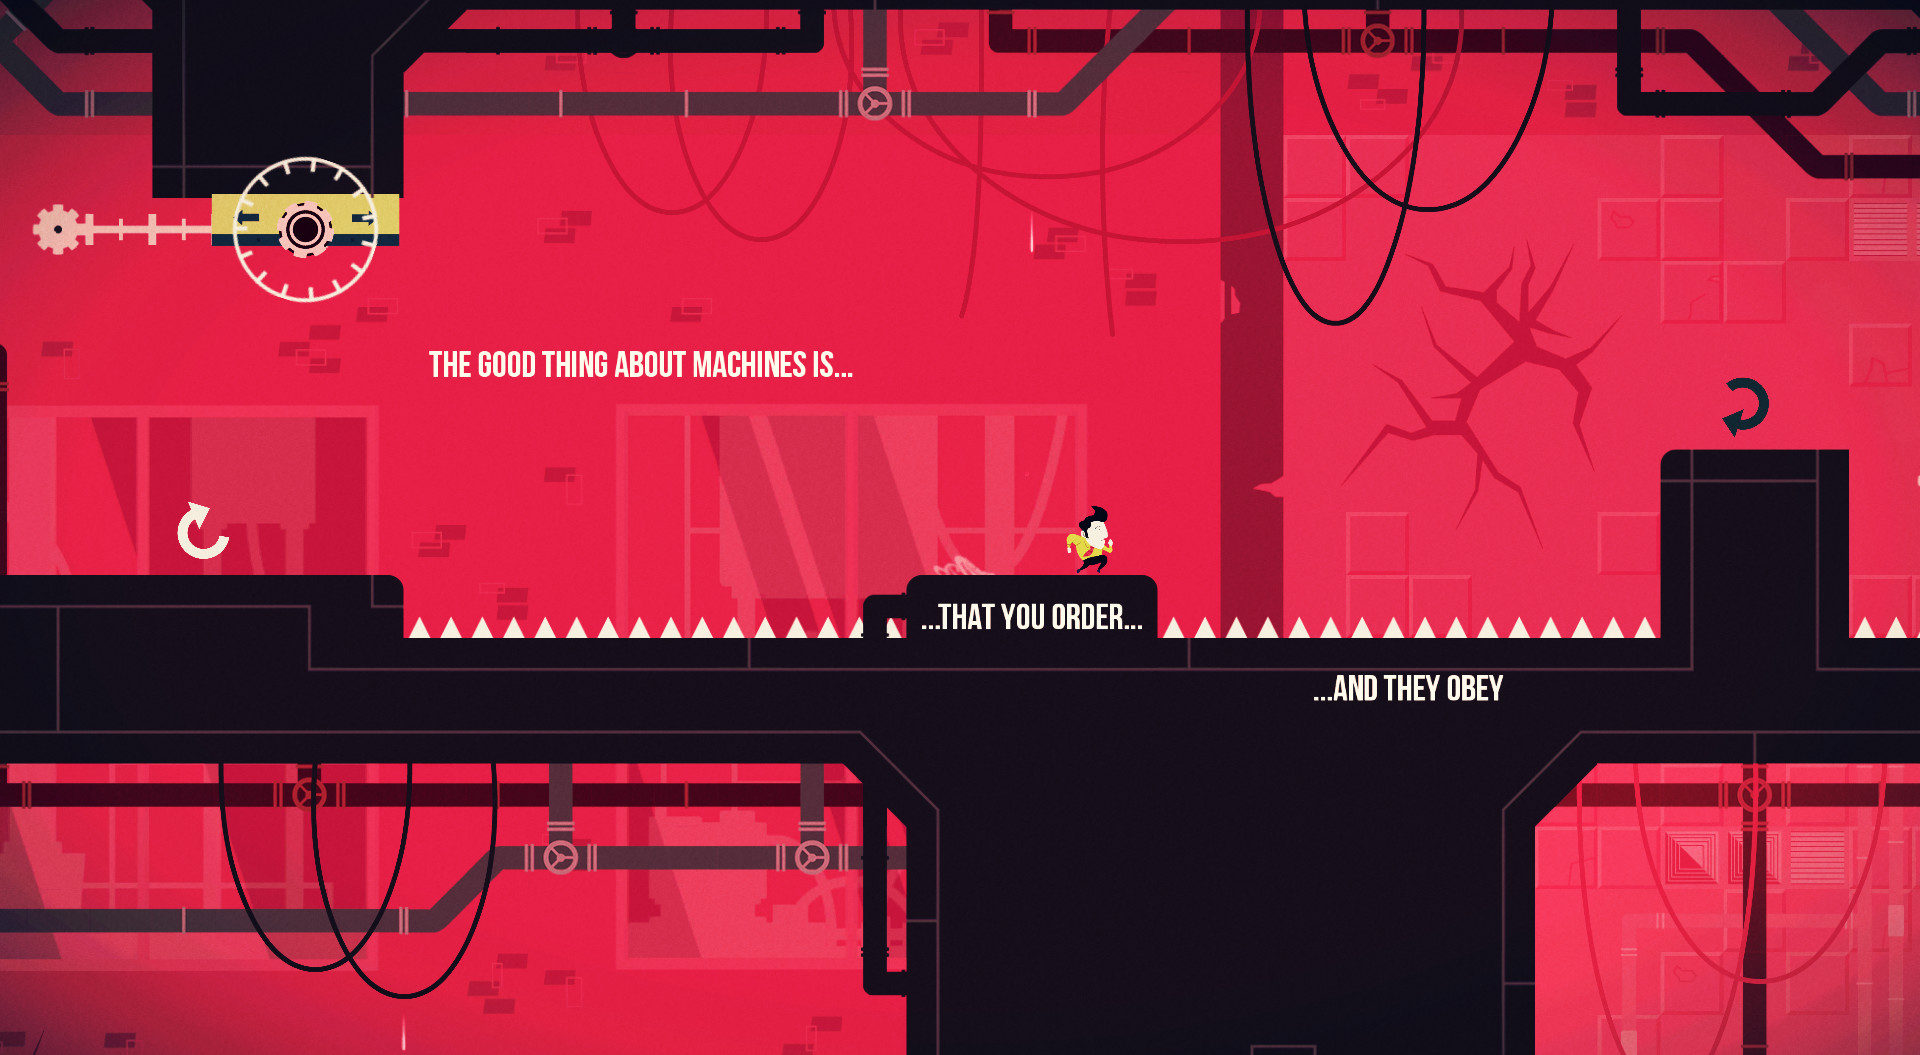 Self-aware platformer Klaus comes to Steam this month